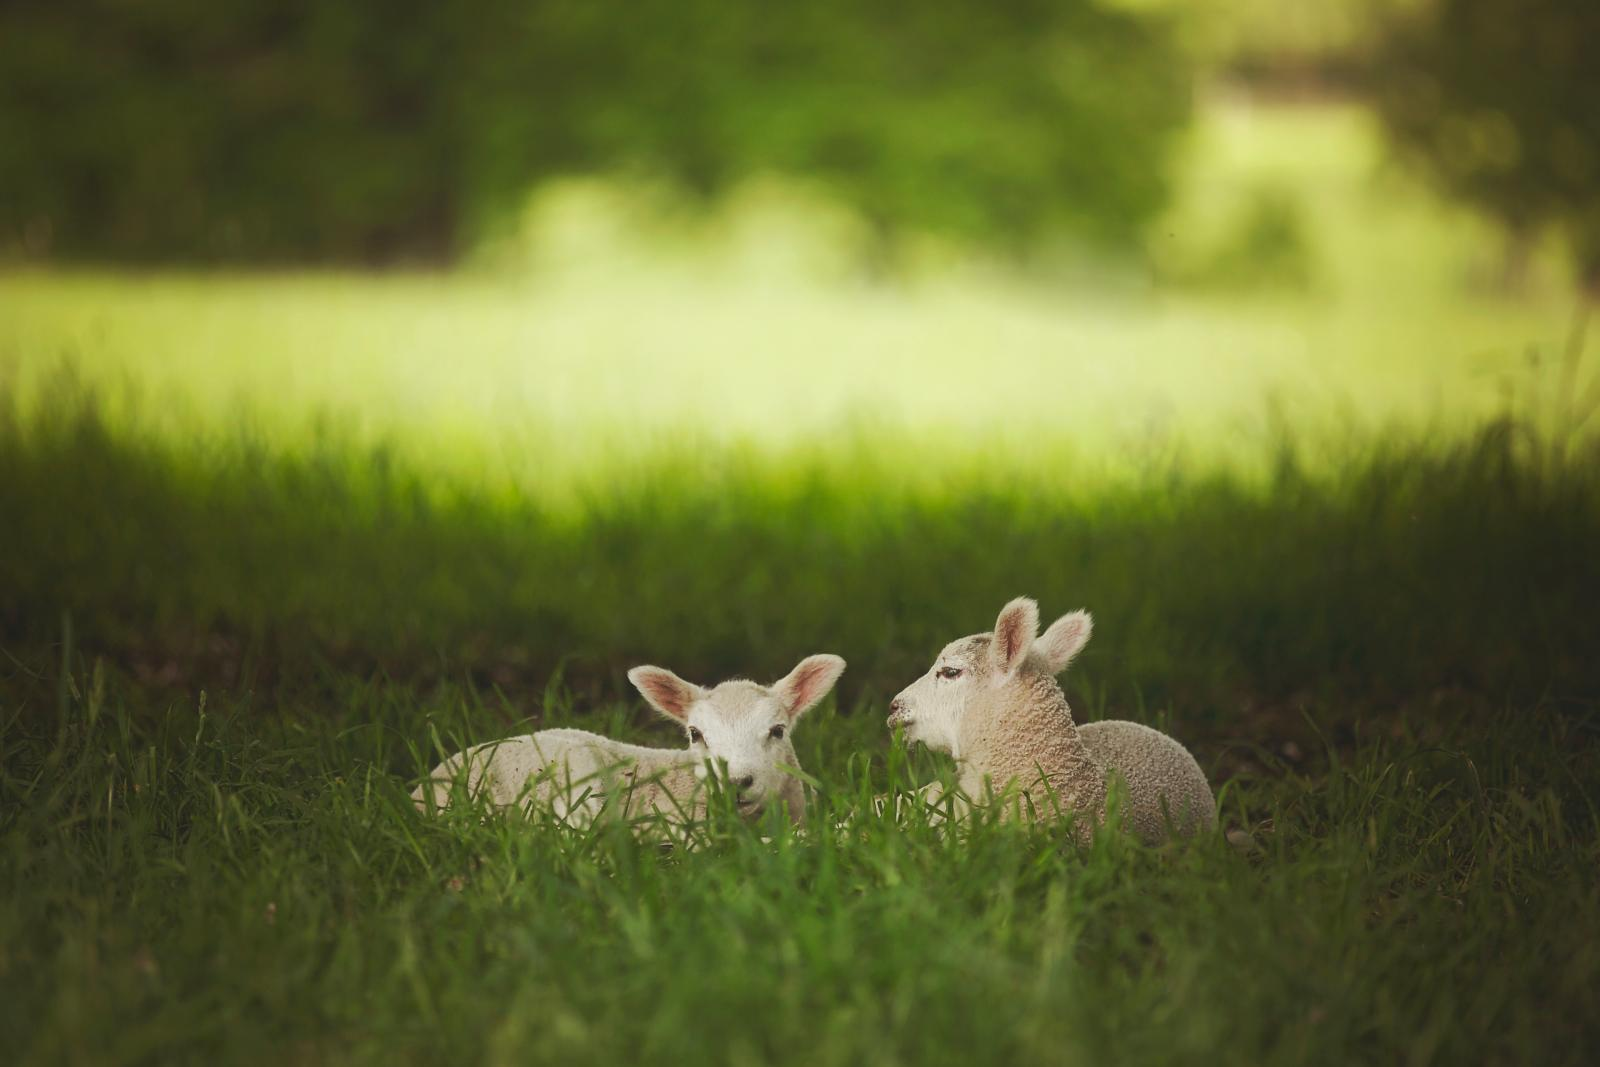 Lams on grass. Photo credit: Pexels